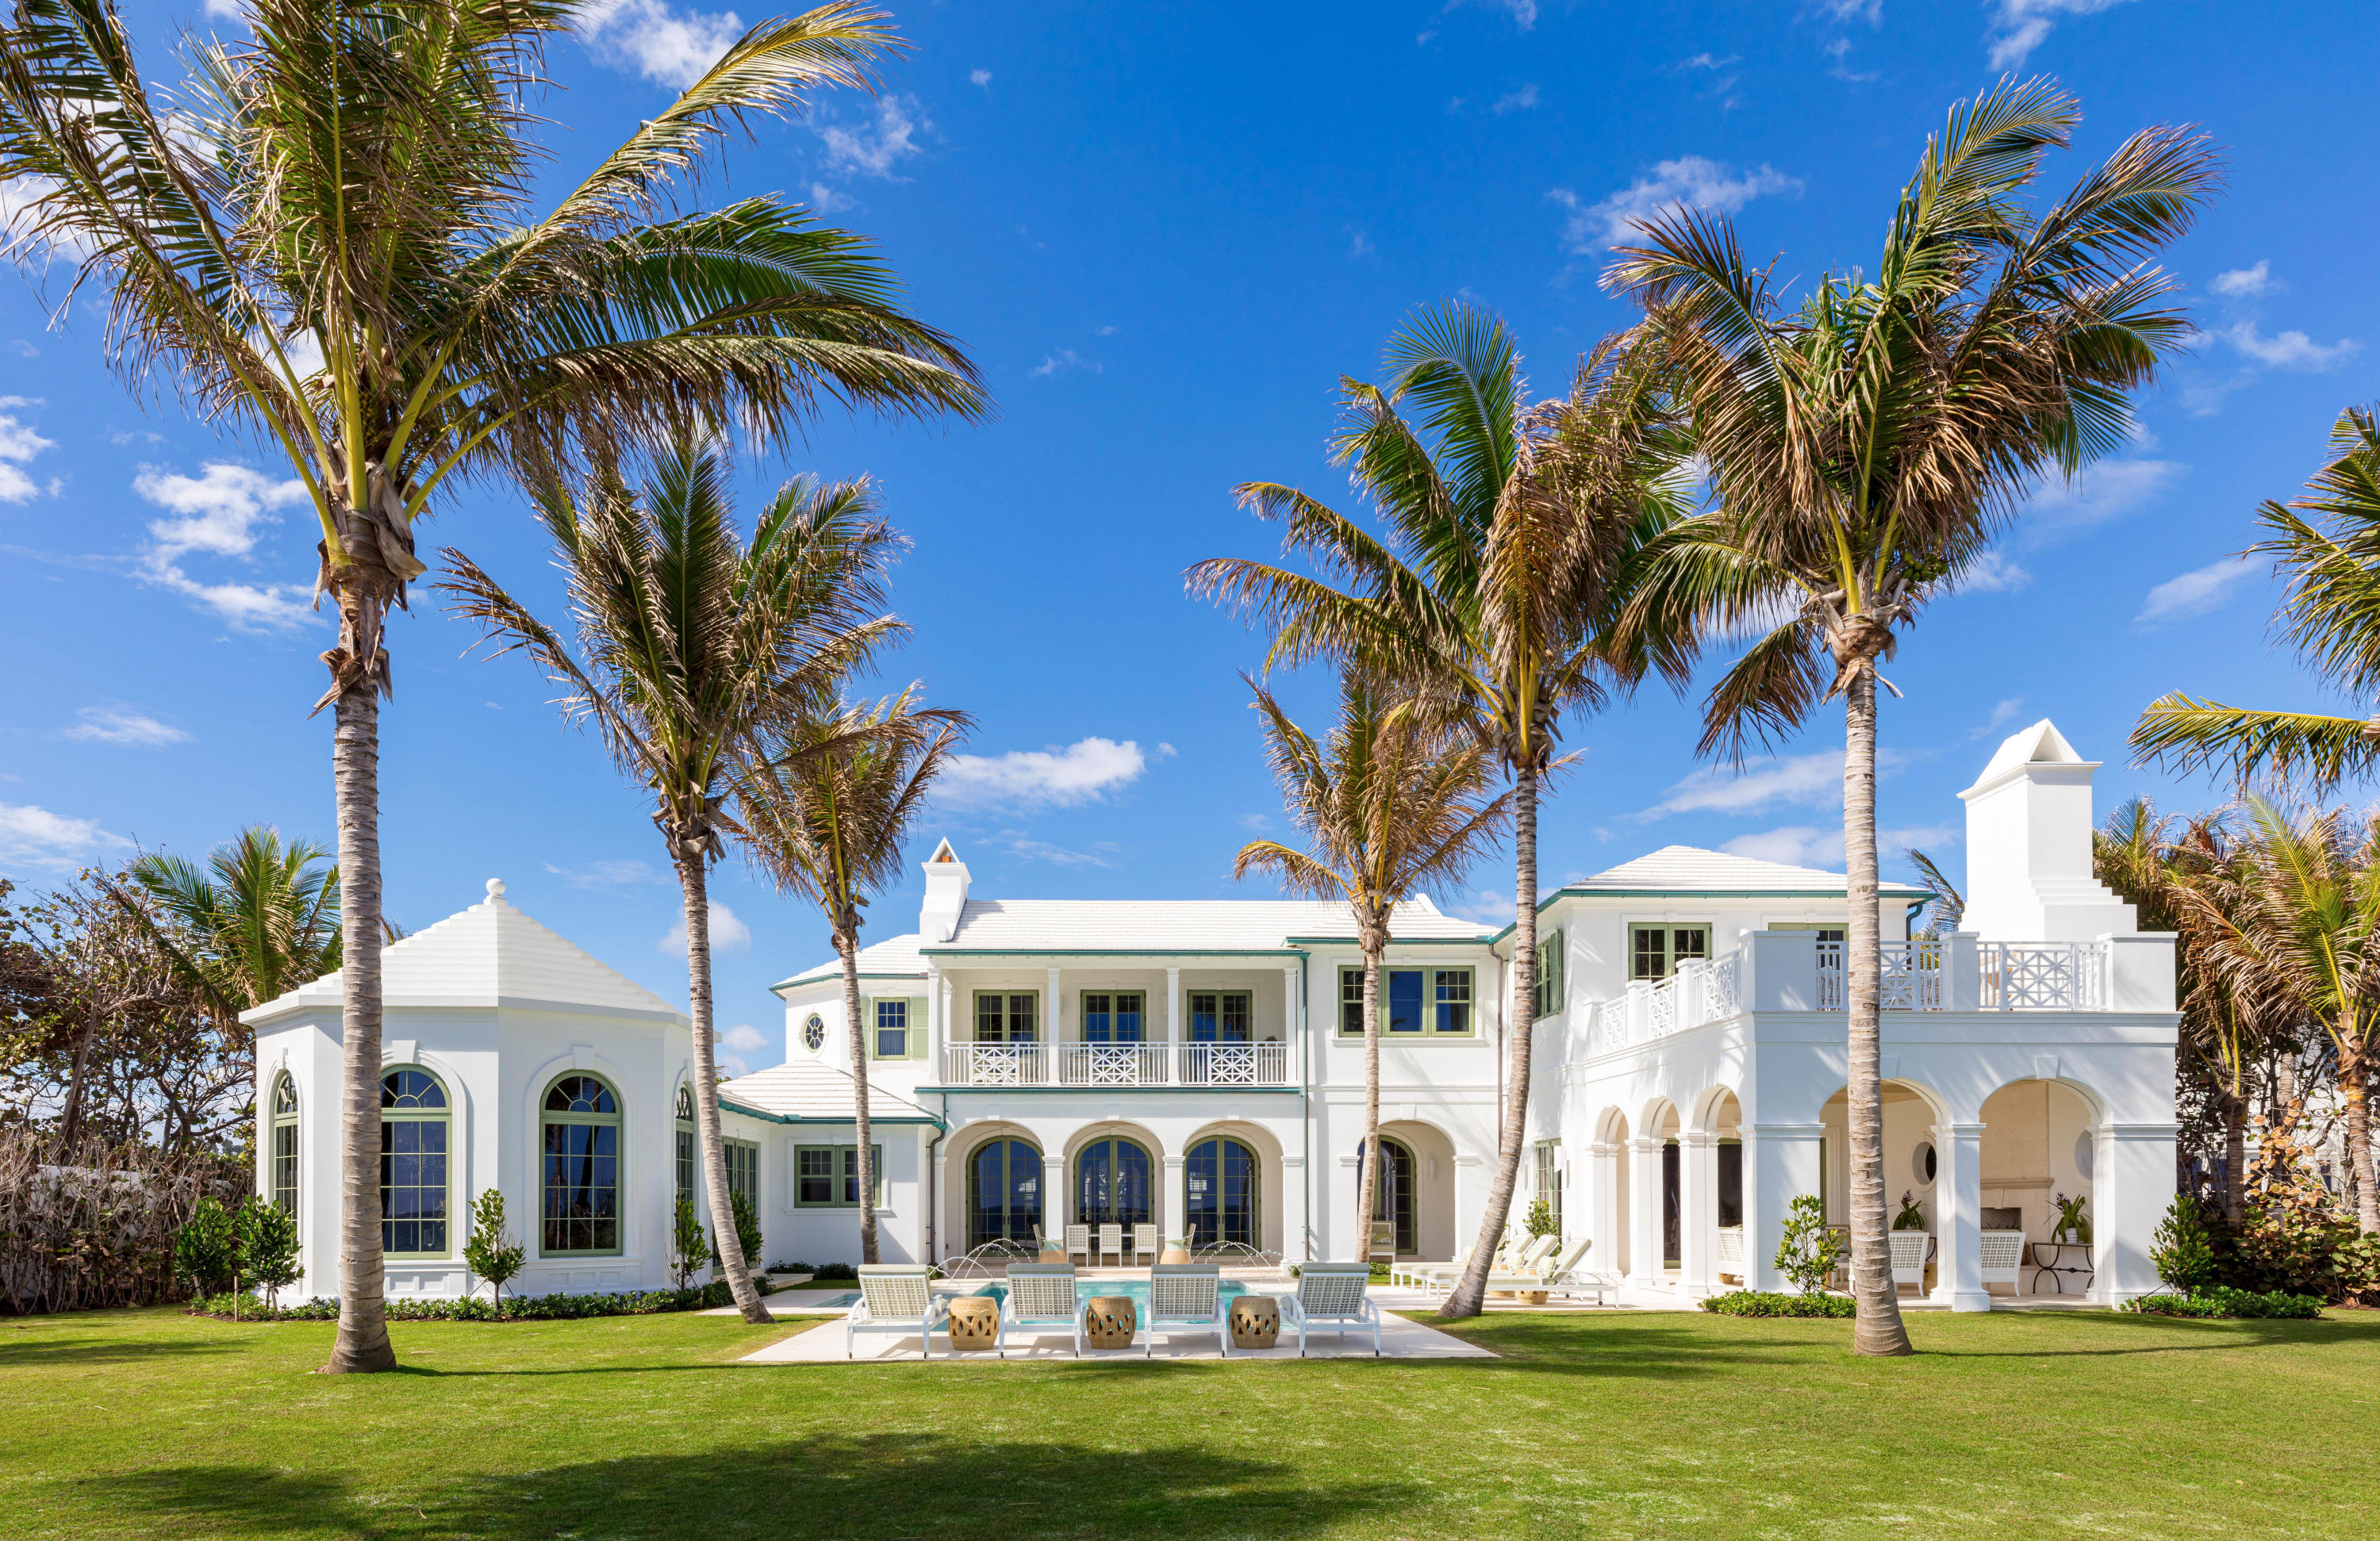 Details for 901 Ocean Boulevard N, Palm Beach, FL 33480